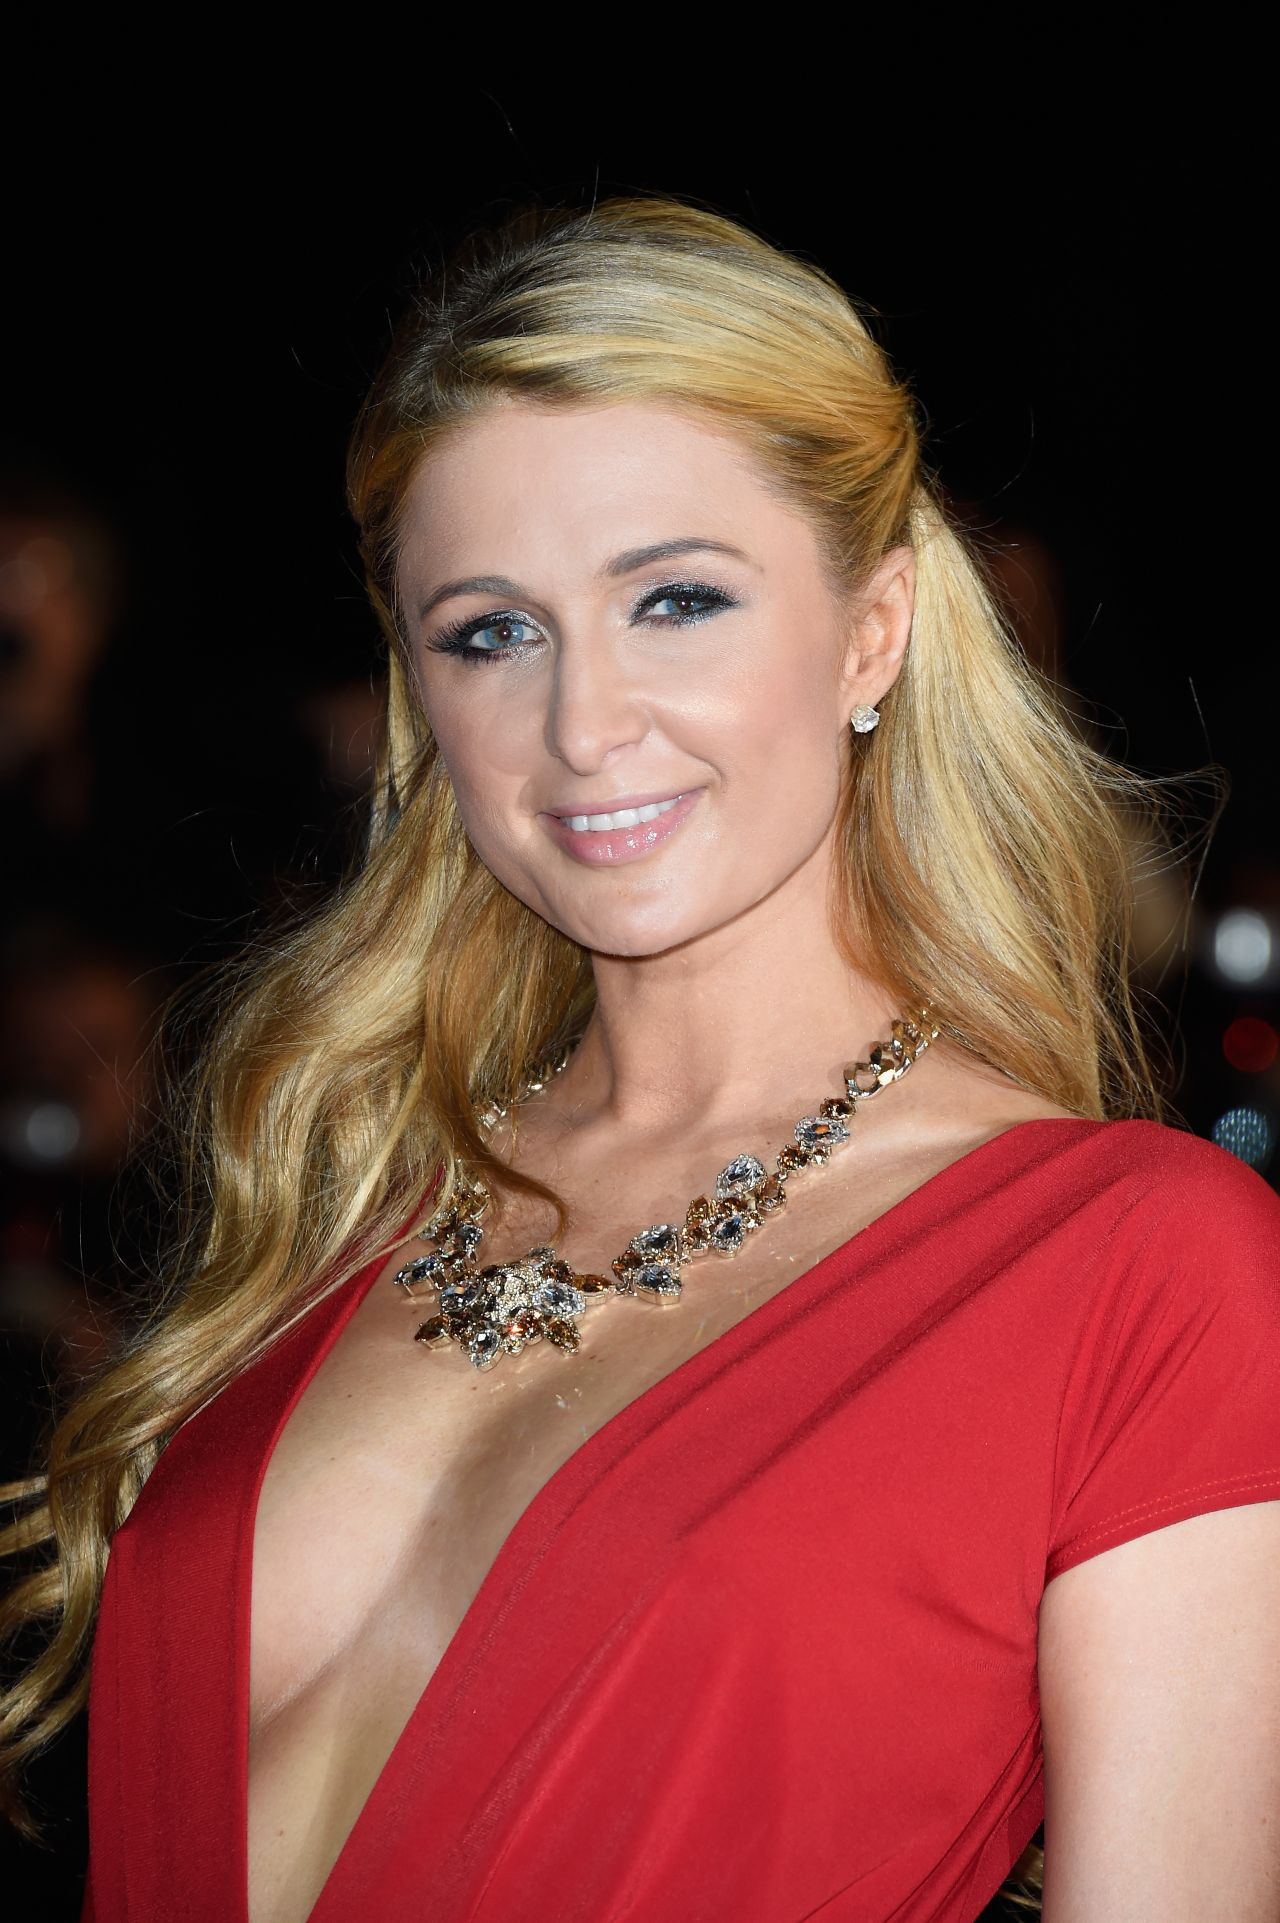 Paris Hilton 2014 Nrj Music Awards In Cannes